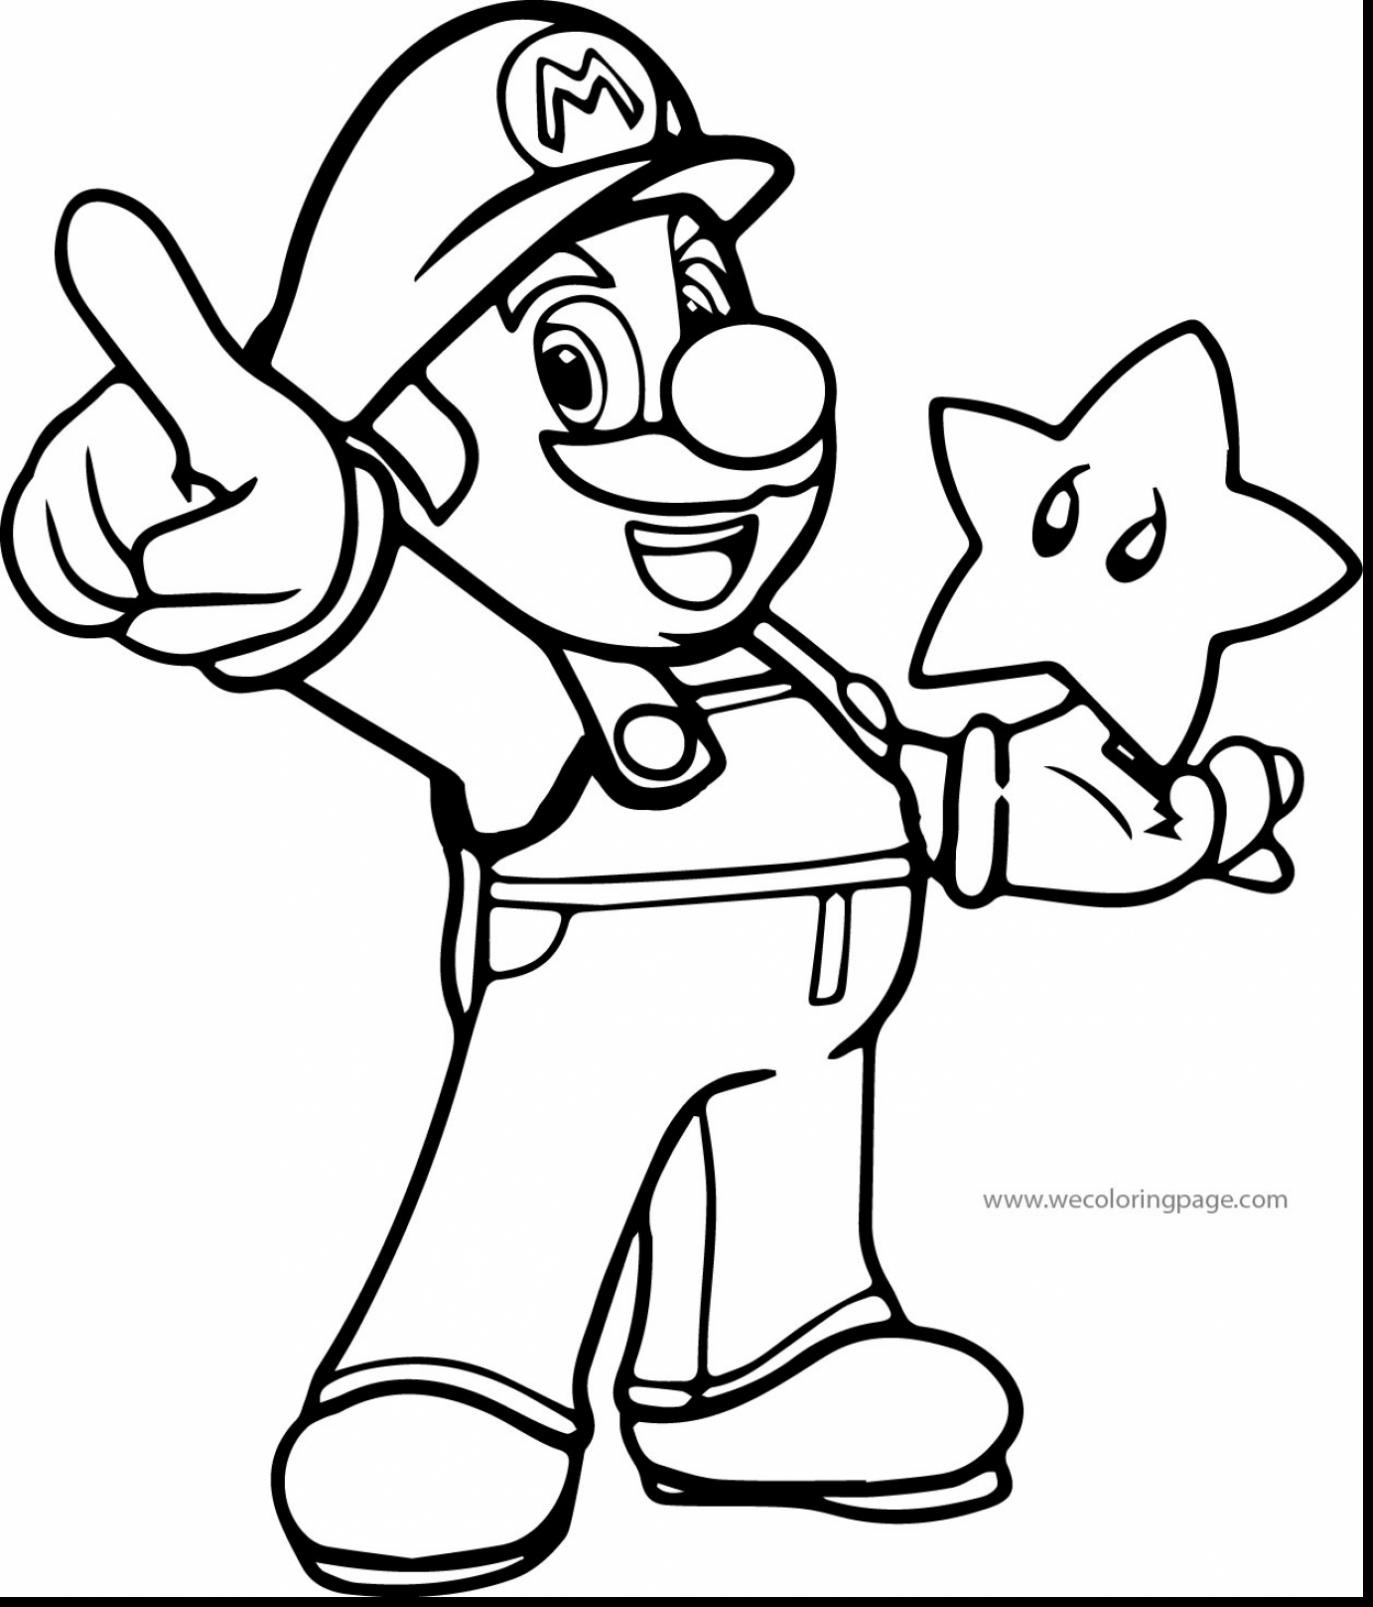 Super Mario Galaxy Coloring Pages